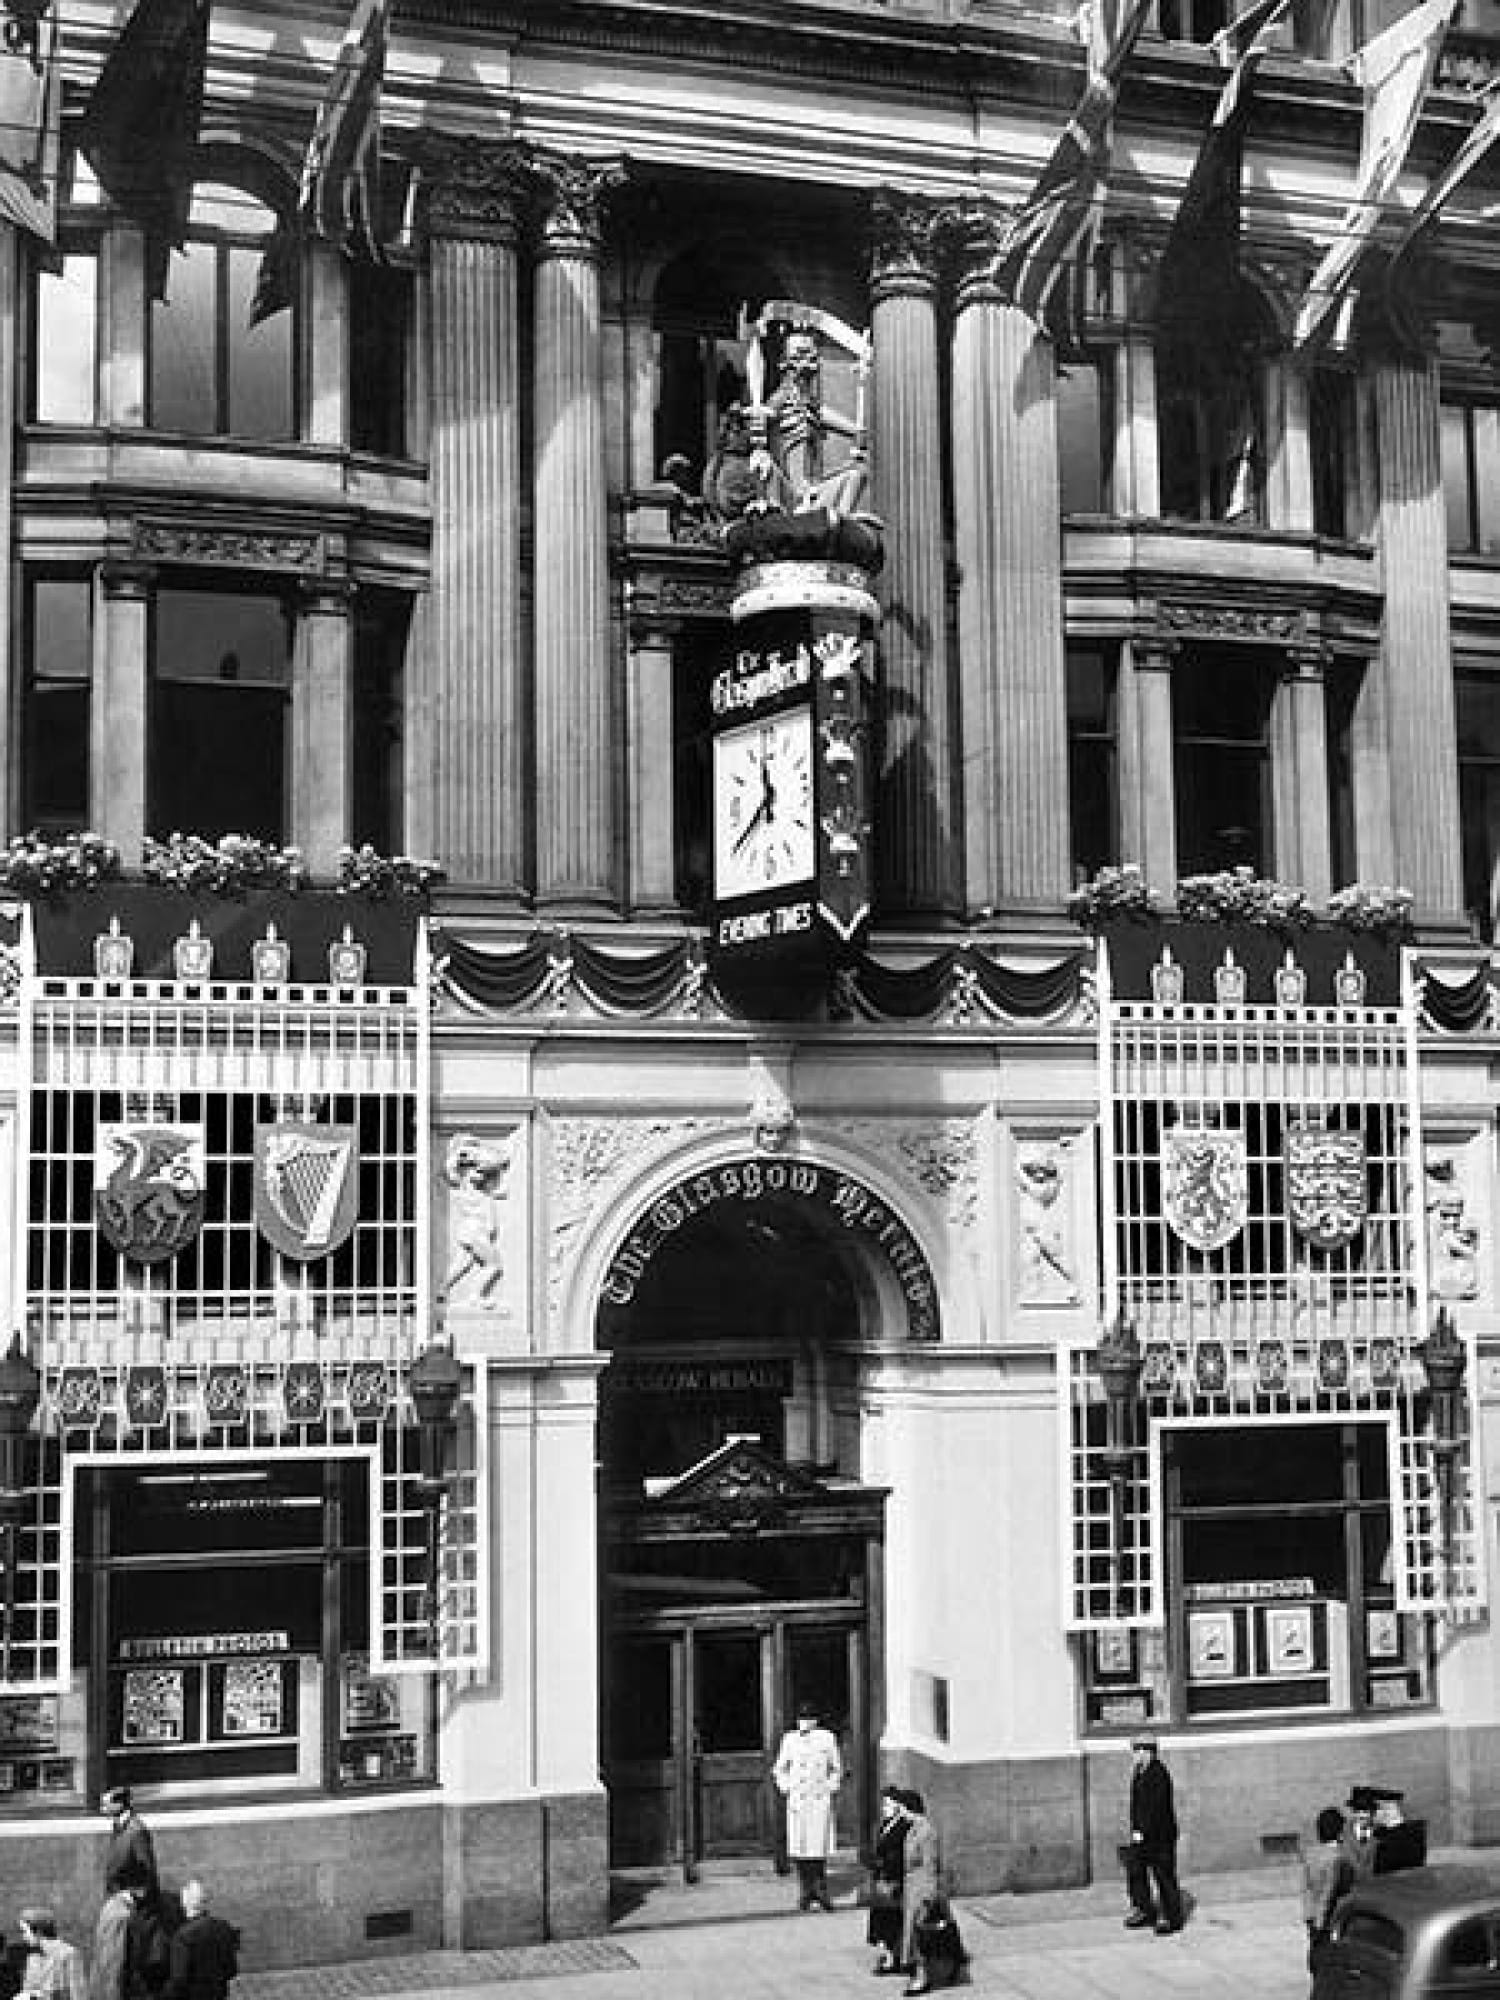 The building, with the old clock, all dressed up for the June 1953 Coronation (Picture: Herald and Times Group)